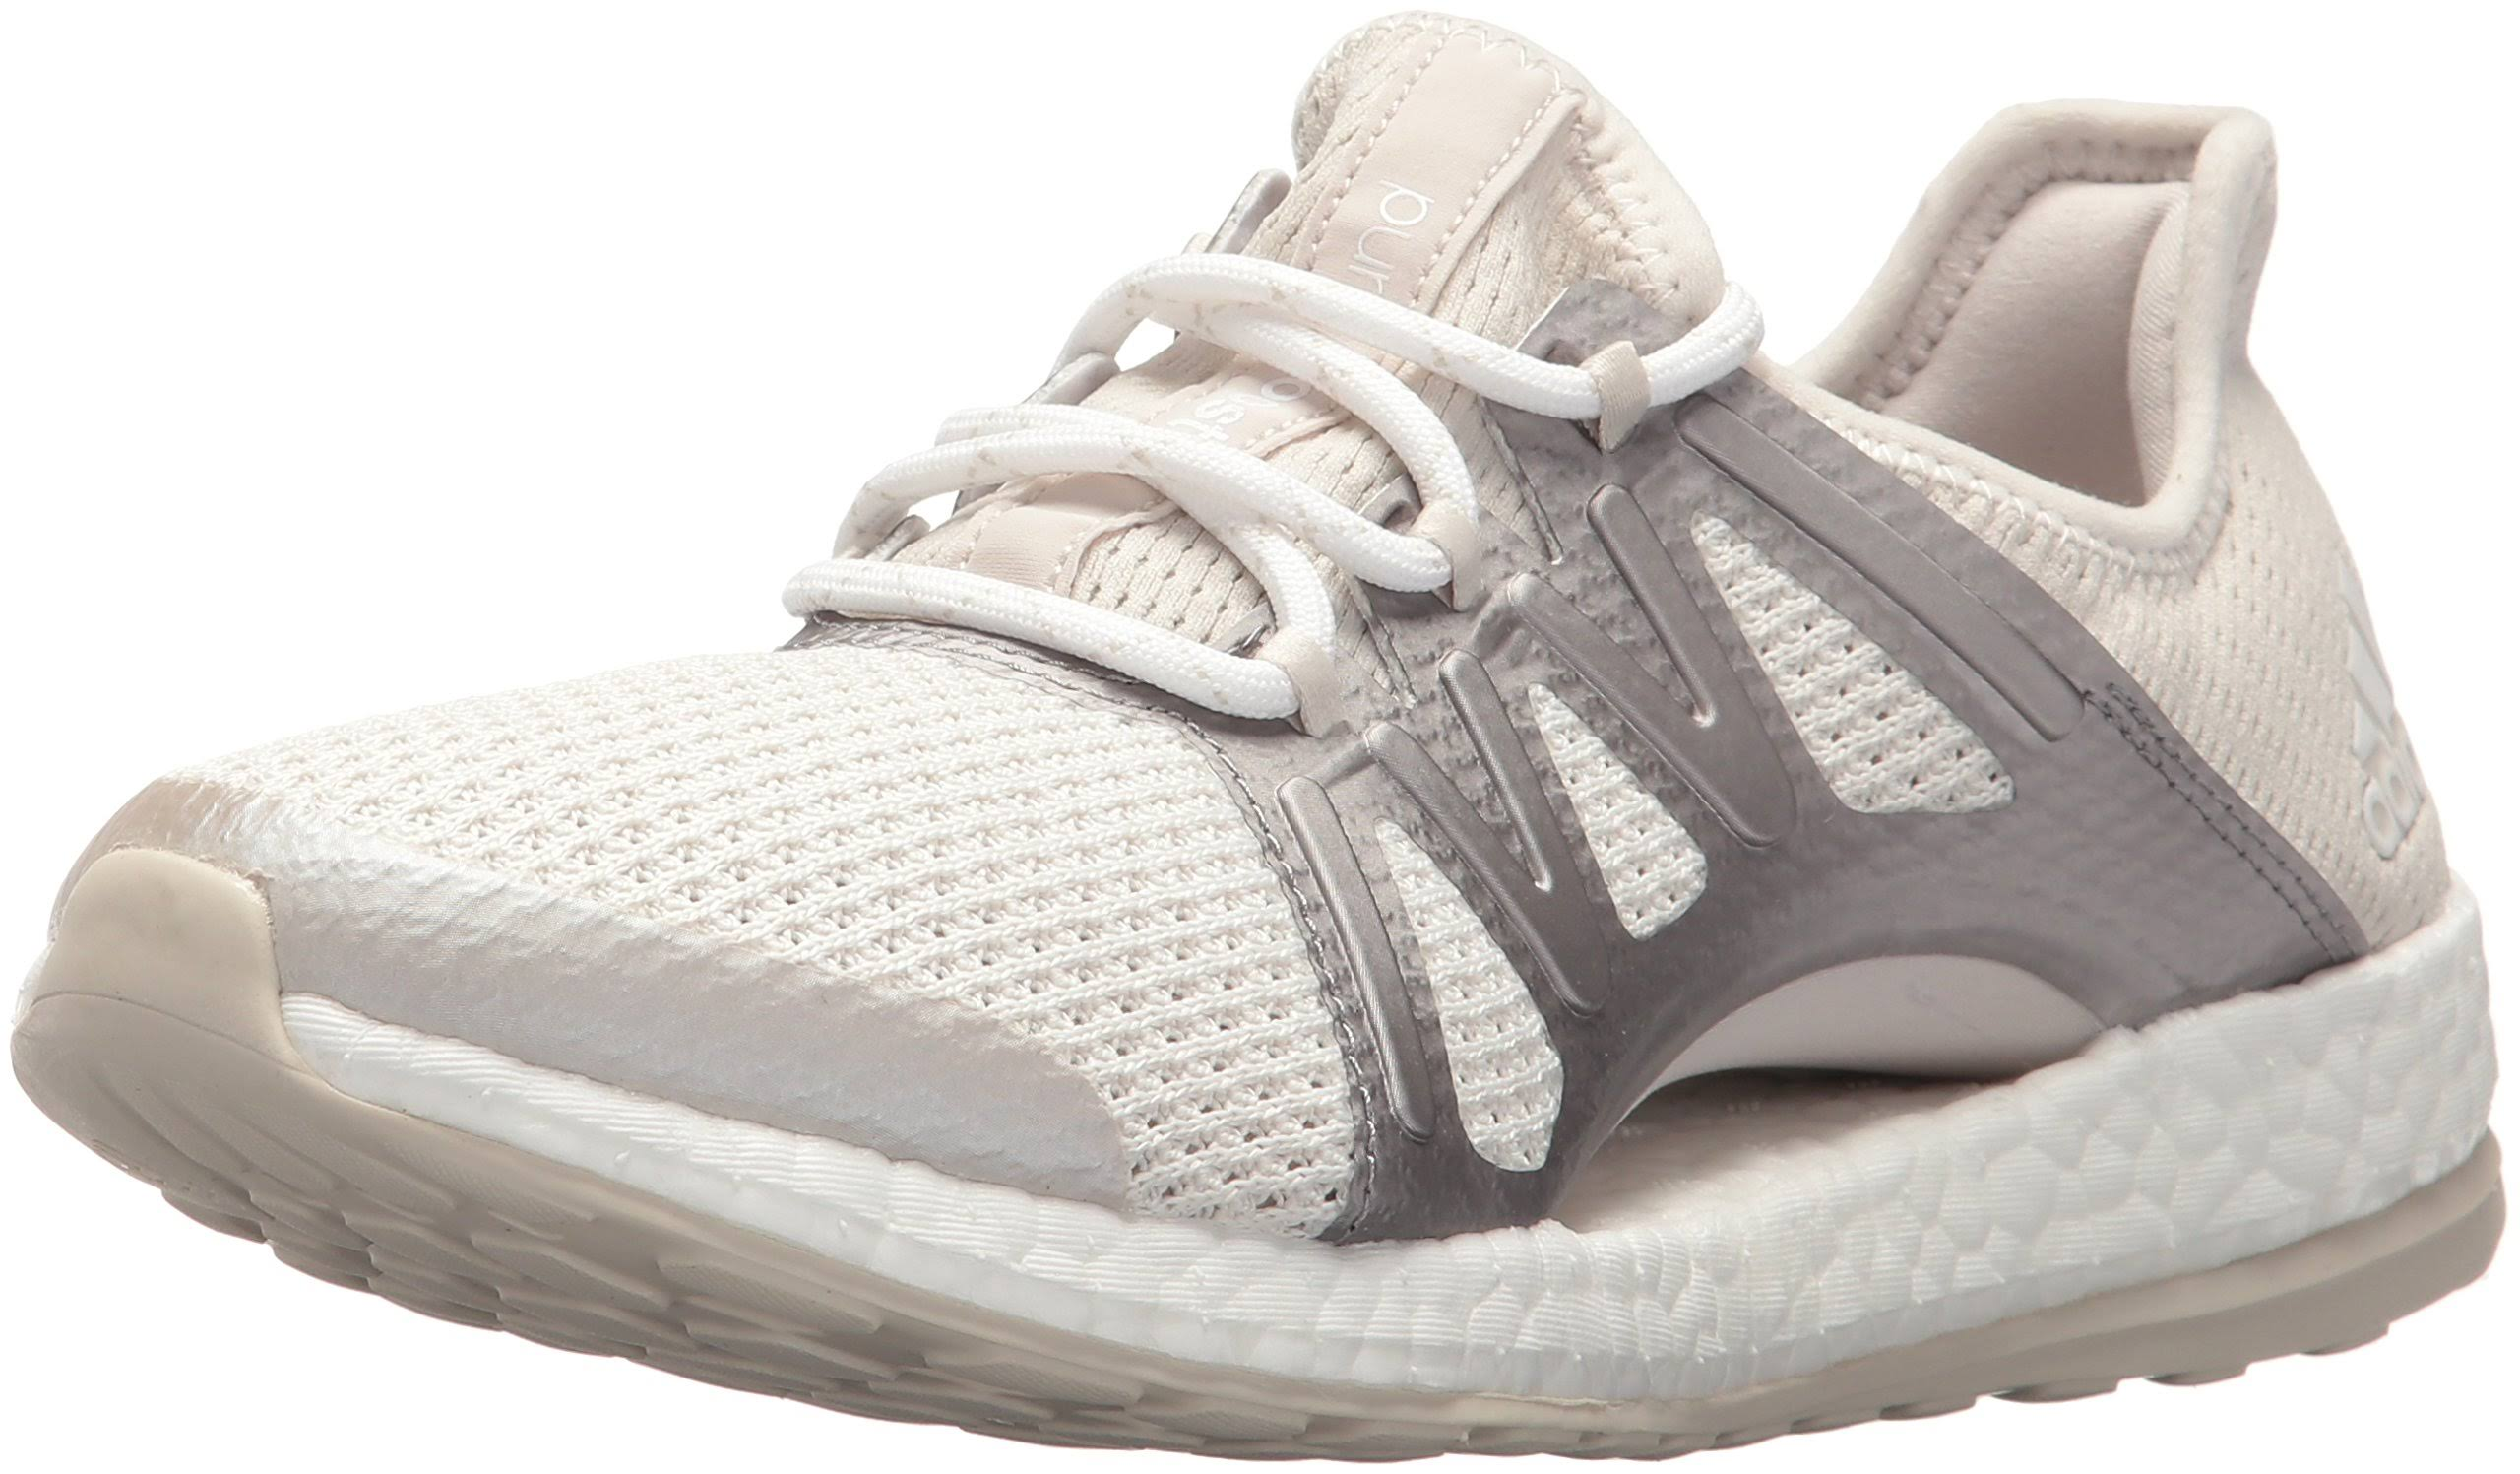 Pureboost Shoes 9 White Adidas Womens Crystal Running Xpose TBnxvd